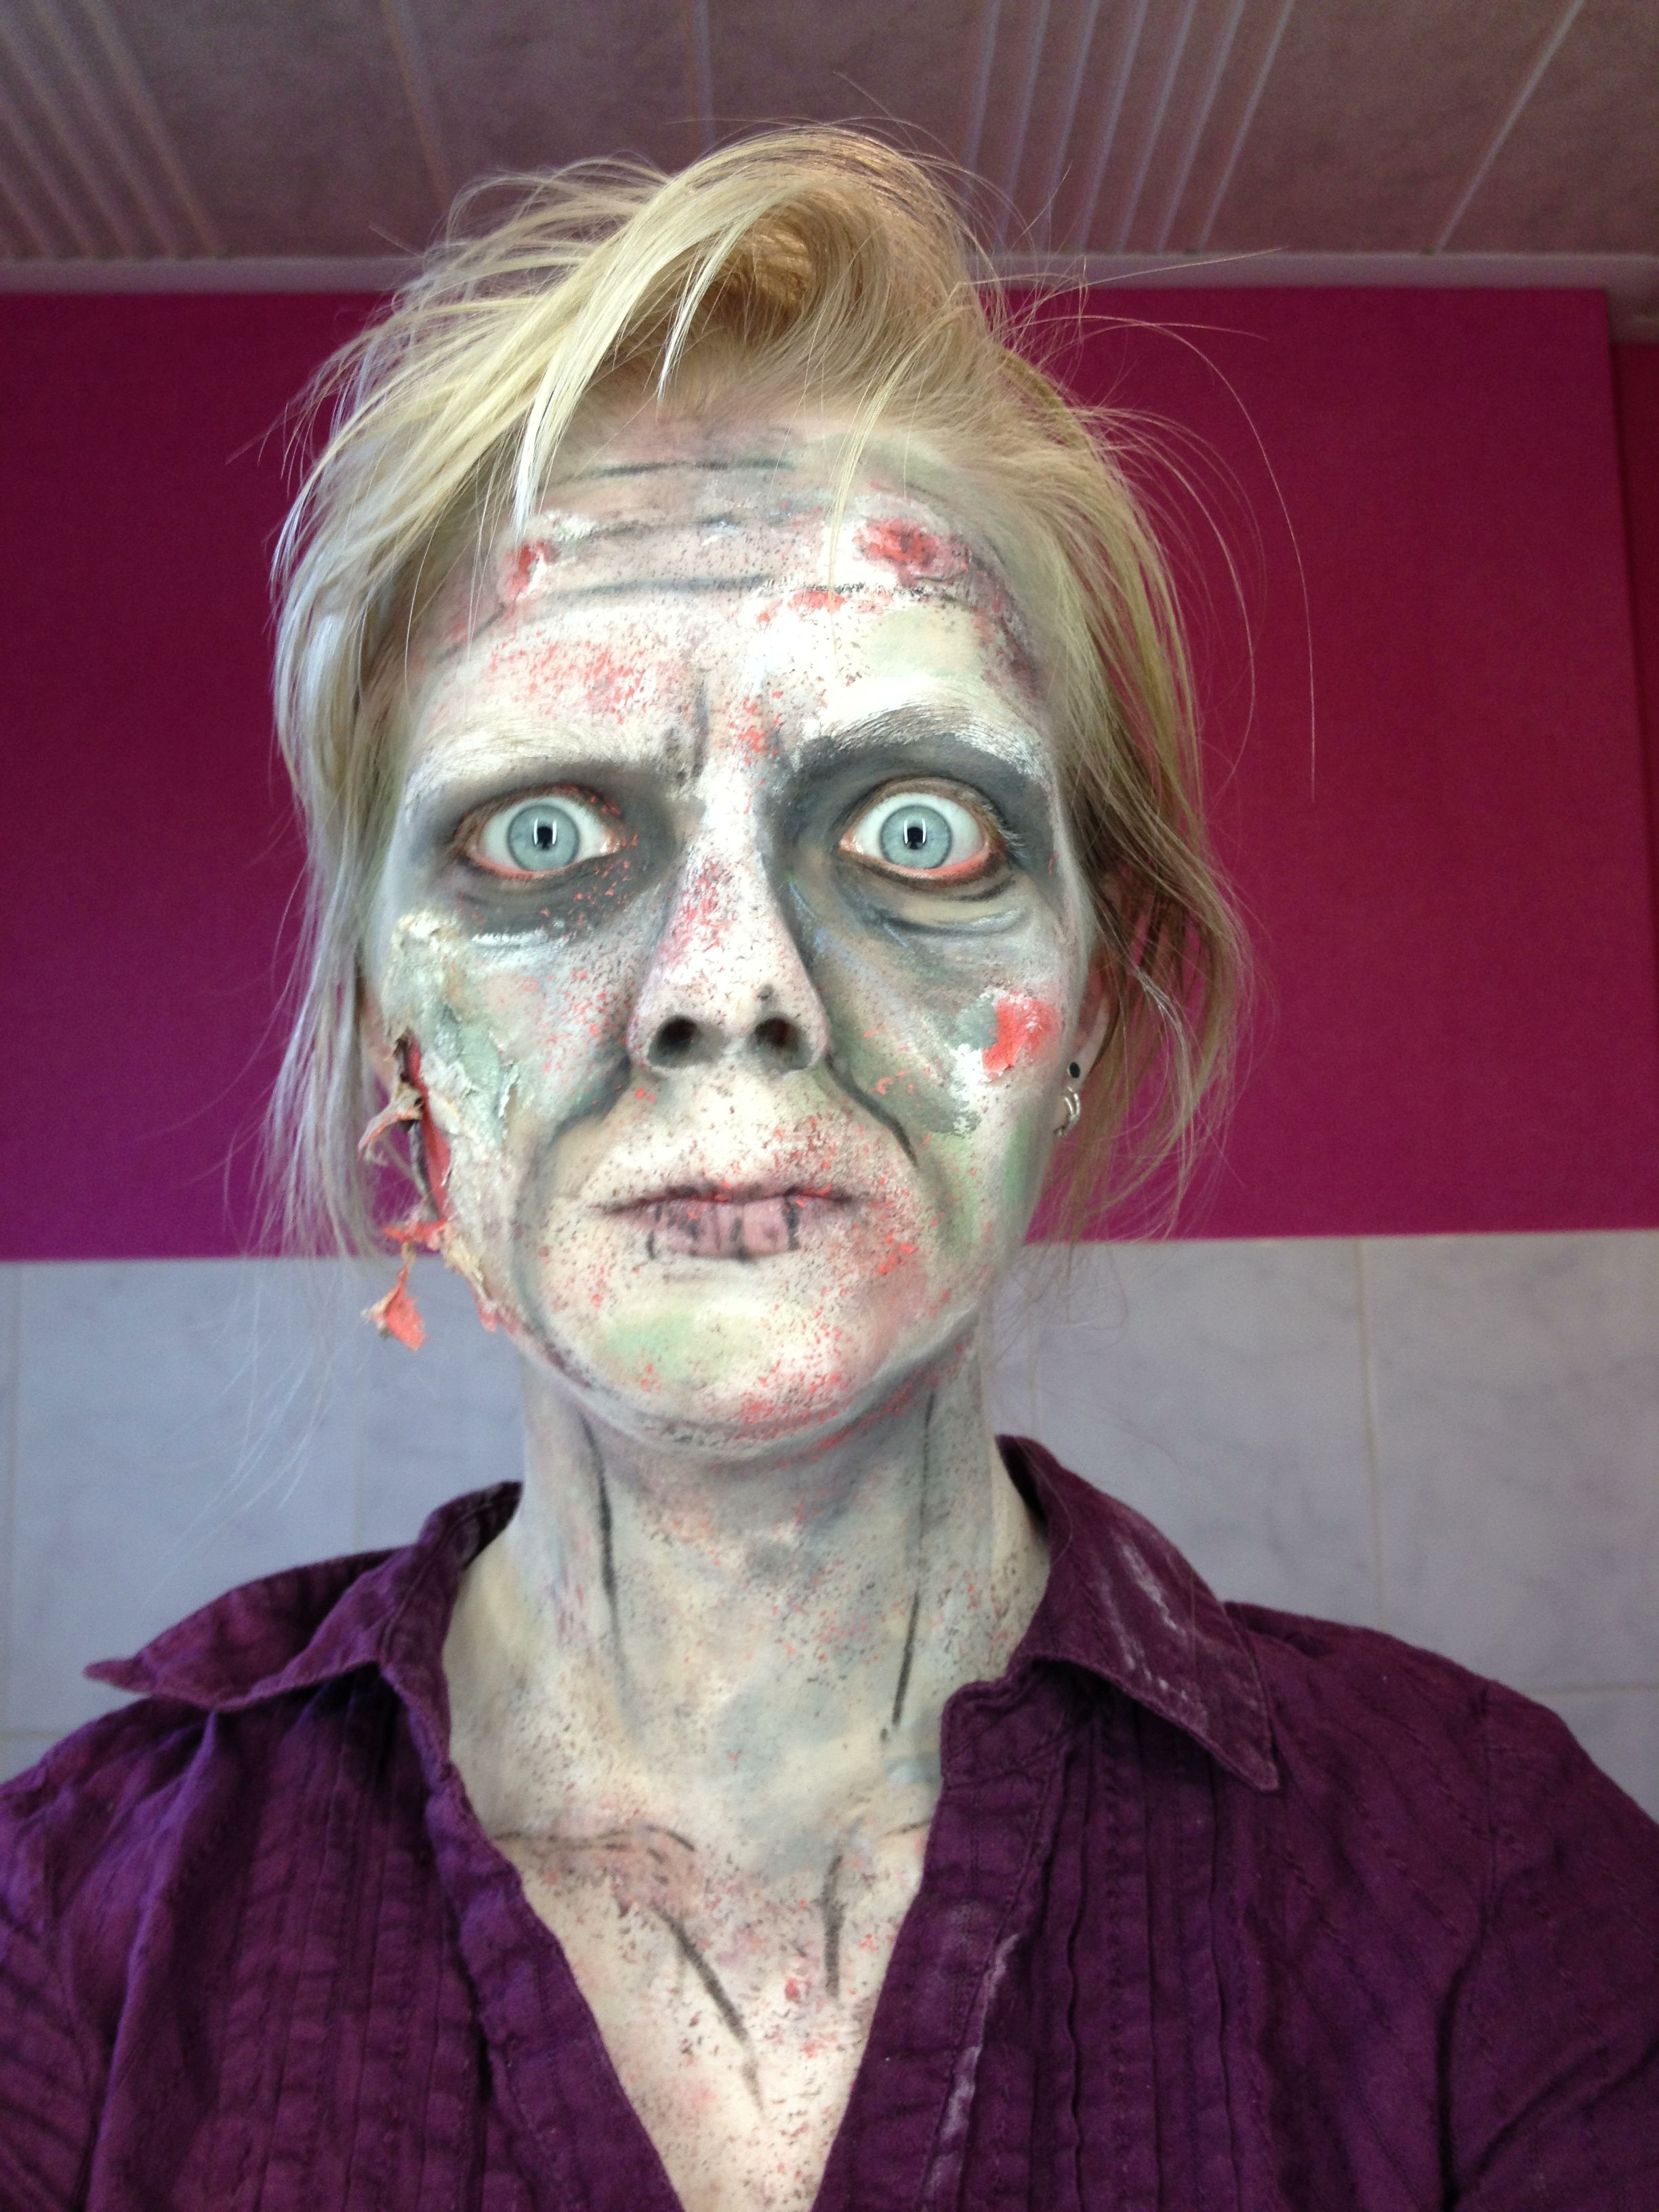 Zombie makeup tryout for halloween. thanks to a lot of